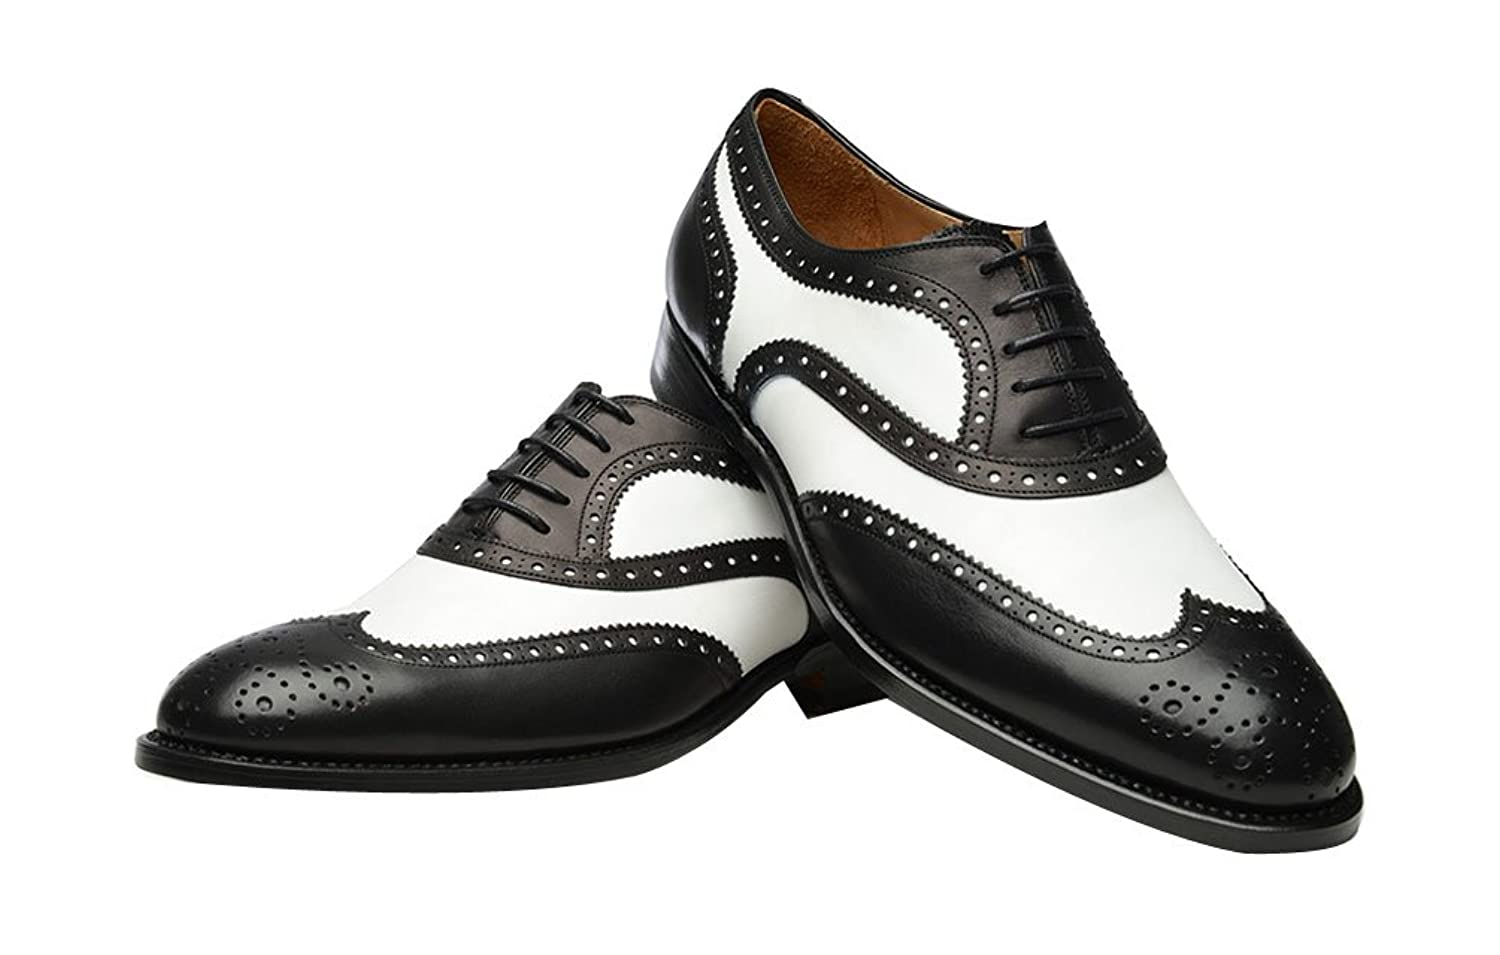 Mens 1920s Shoes History and Buying Guide ROYAL WIND Geninue Leather Spectator Shoes Mens Black White Lace up Wing Tip Perforated Dress Shoes $79.99 AT vintagedancer.com